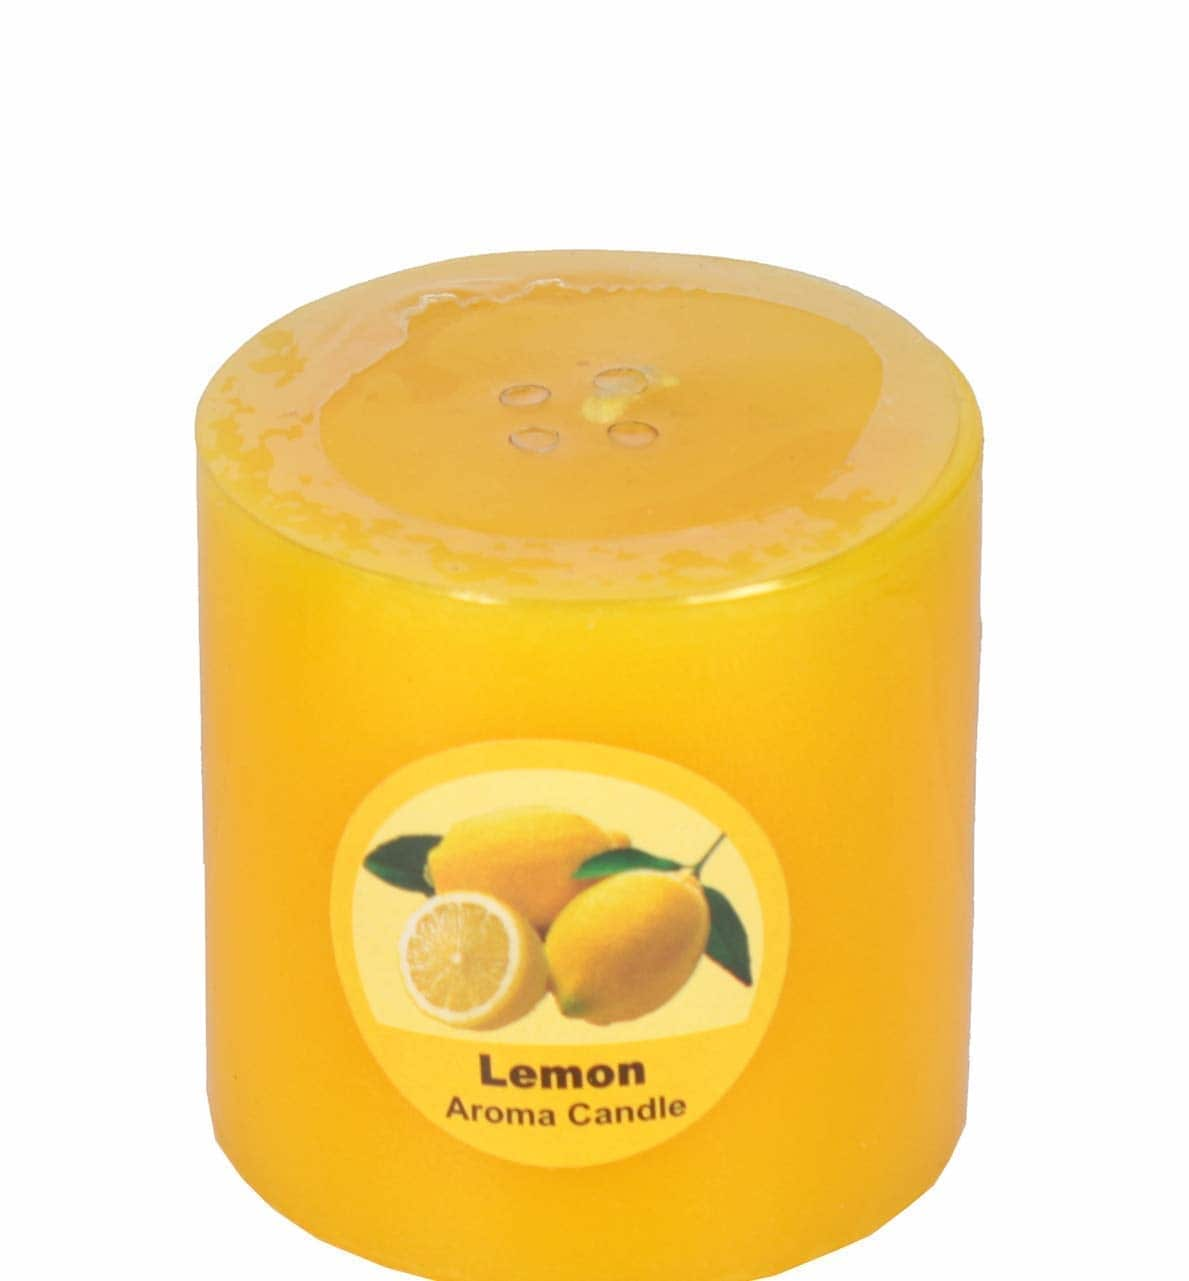 """Golden bell Scented Aroma Fragrance 100% Wax Perfume Pillar Candles for Home Decoration, Dimensions (2.5"""" x 2.5"""") Inches, Pack of One Candle, Available in 4 Different Fragrances. (Lemon)  Here are some candles of low price from the house of Goldenbell..For purchasing just click on the images..  #candles #fragrancescandles  #decorativecandles  https://www.amazon.in/dp/B07HVMGCY8"""